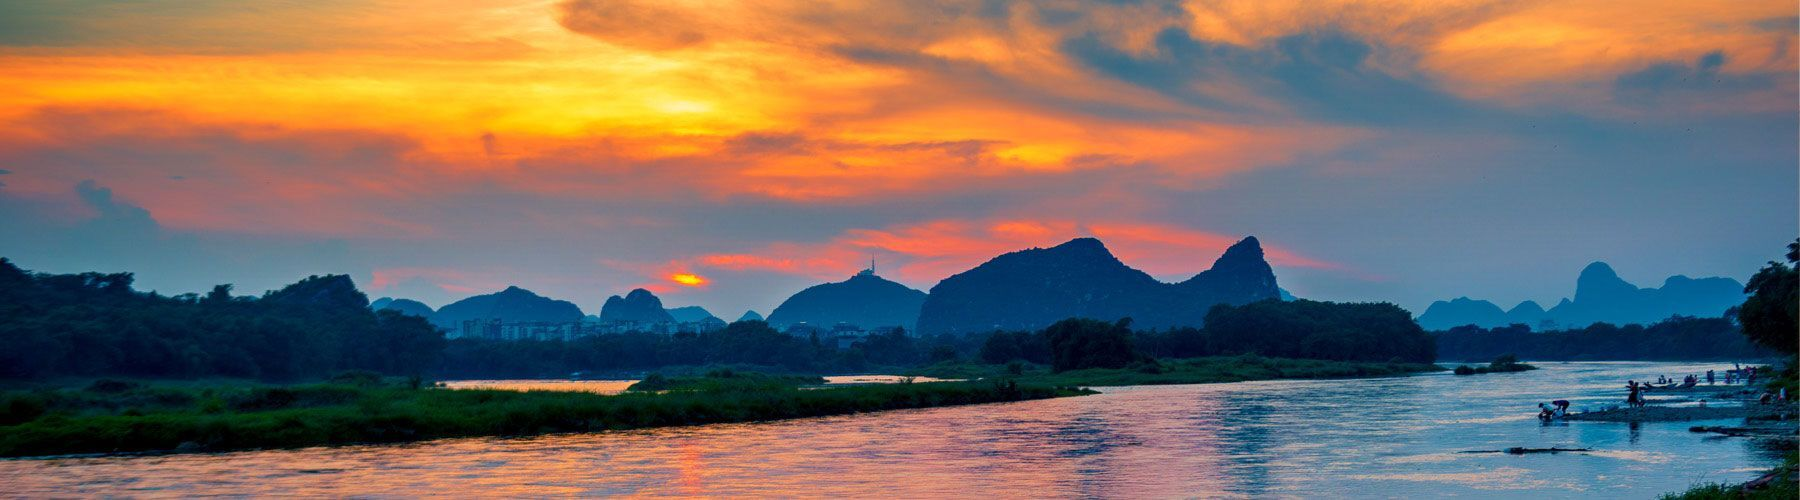 Sunset in Li River